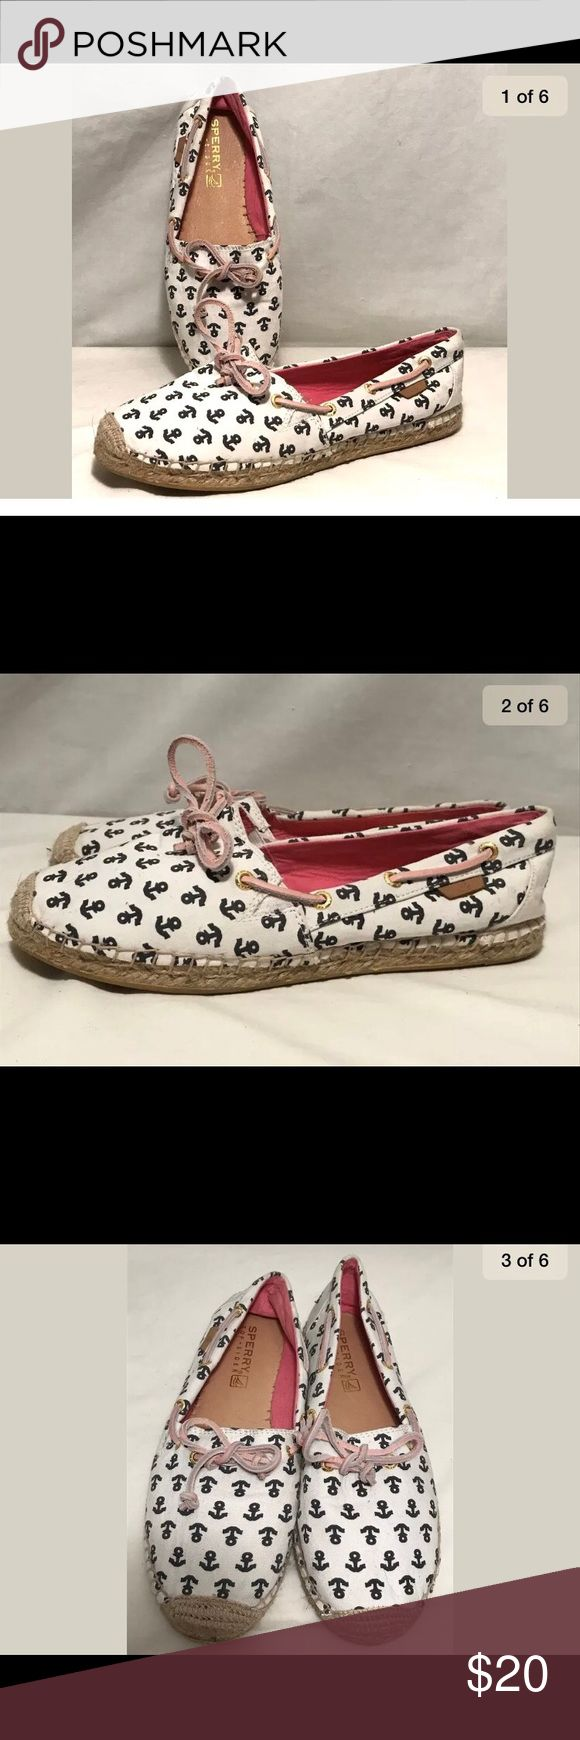 Sperry White Navy Blue Anchor Nautical Flats 8M Sperry White Navy Blue Anchor Nautical Hemp Ballet Loafer Comfort Shoes 8M Sperry Top-Sider Shoes Flats & Loafers